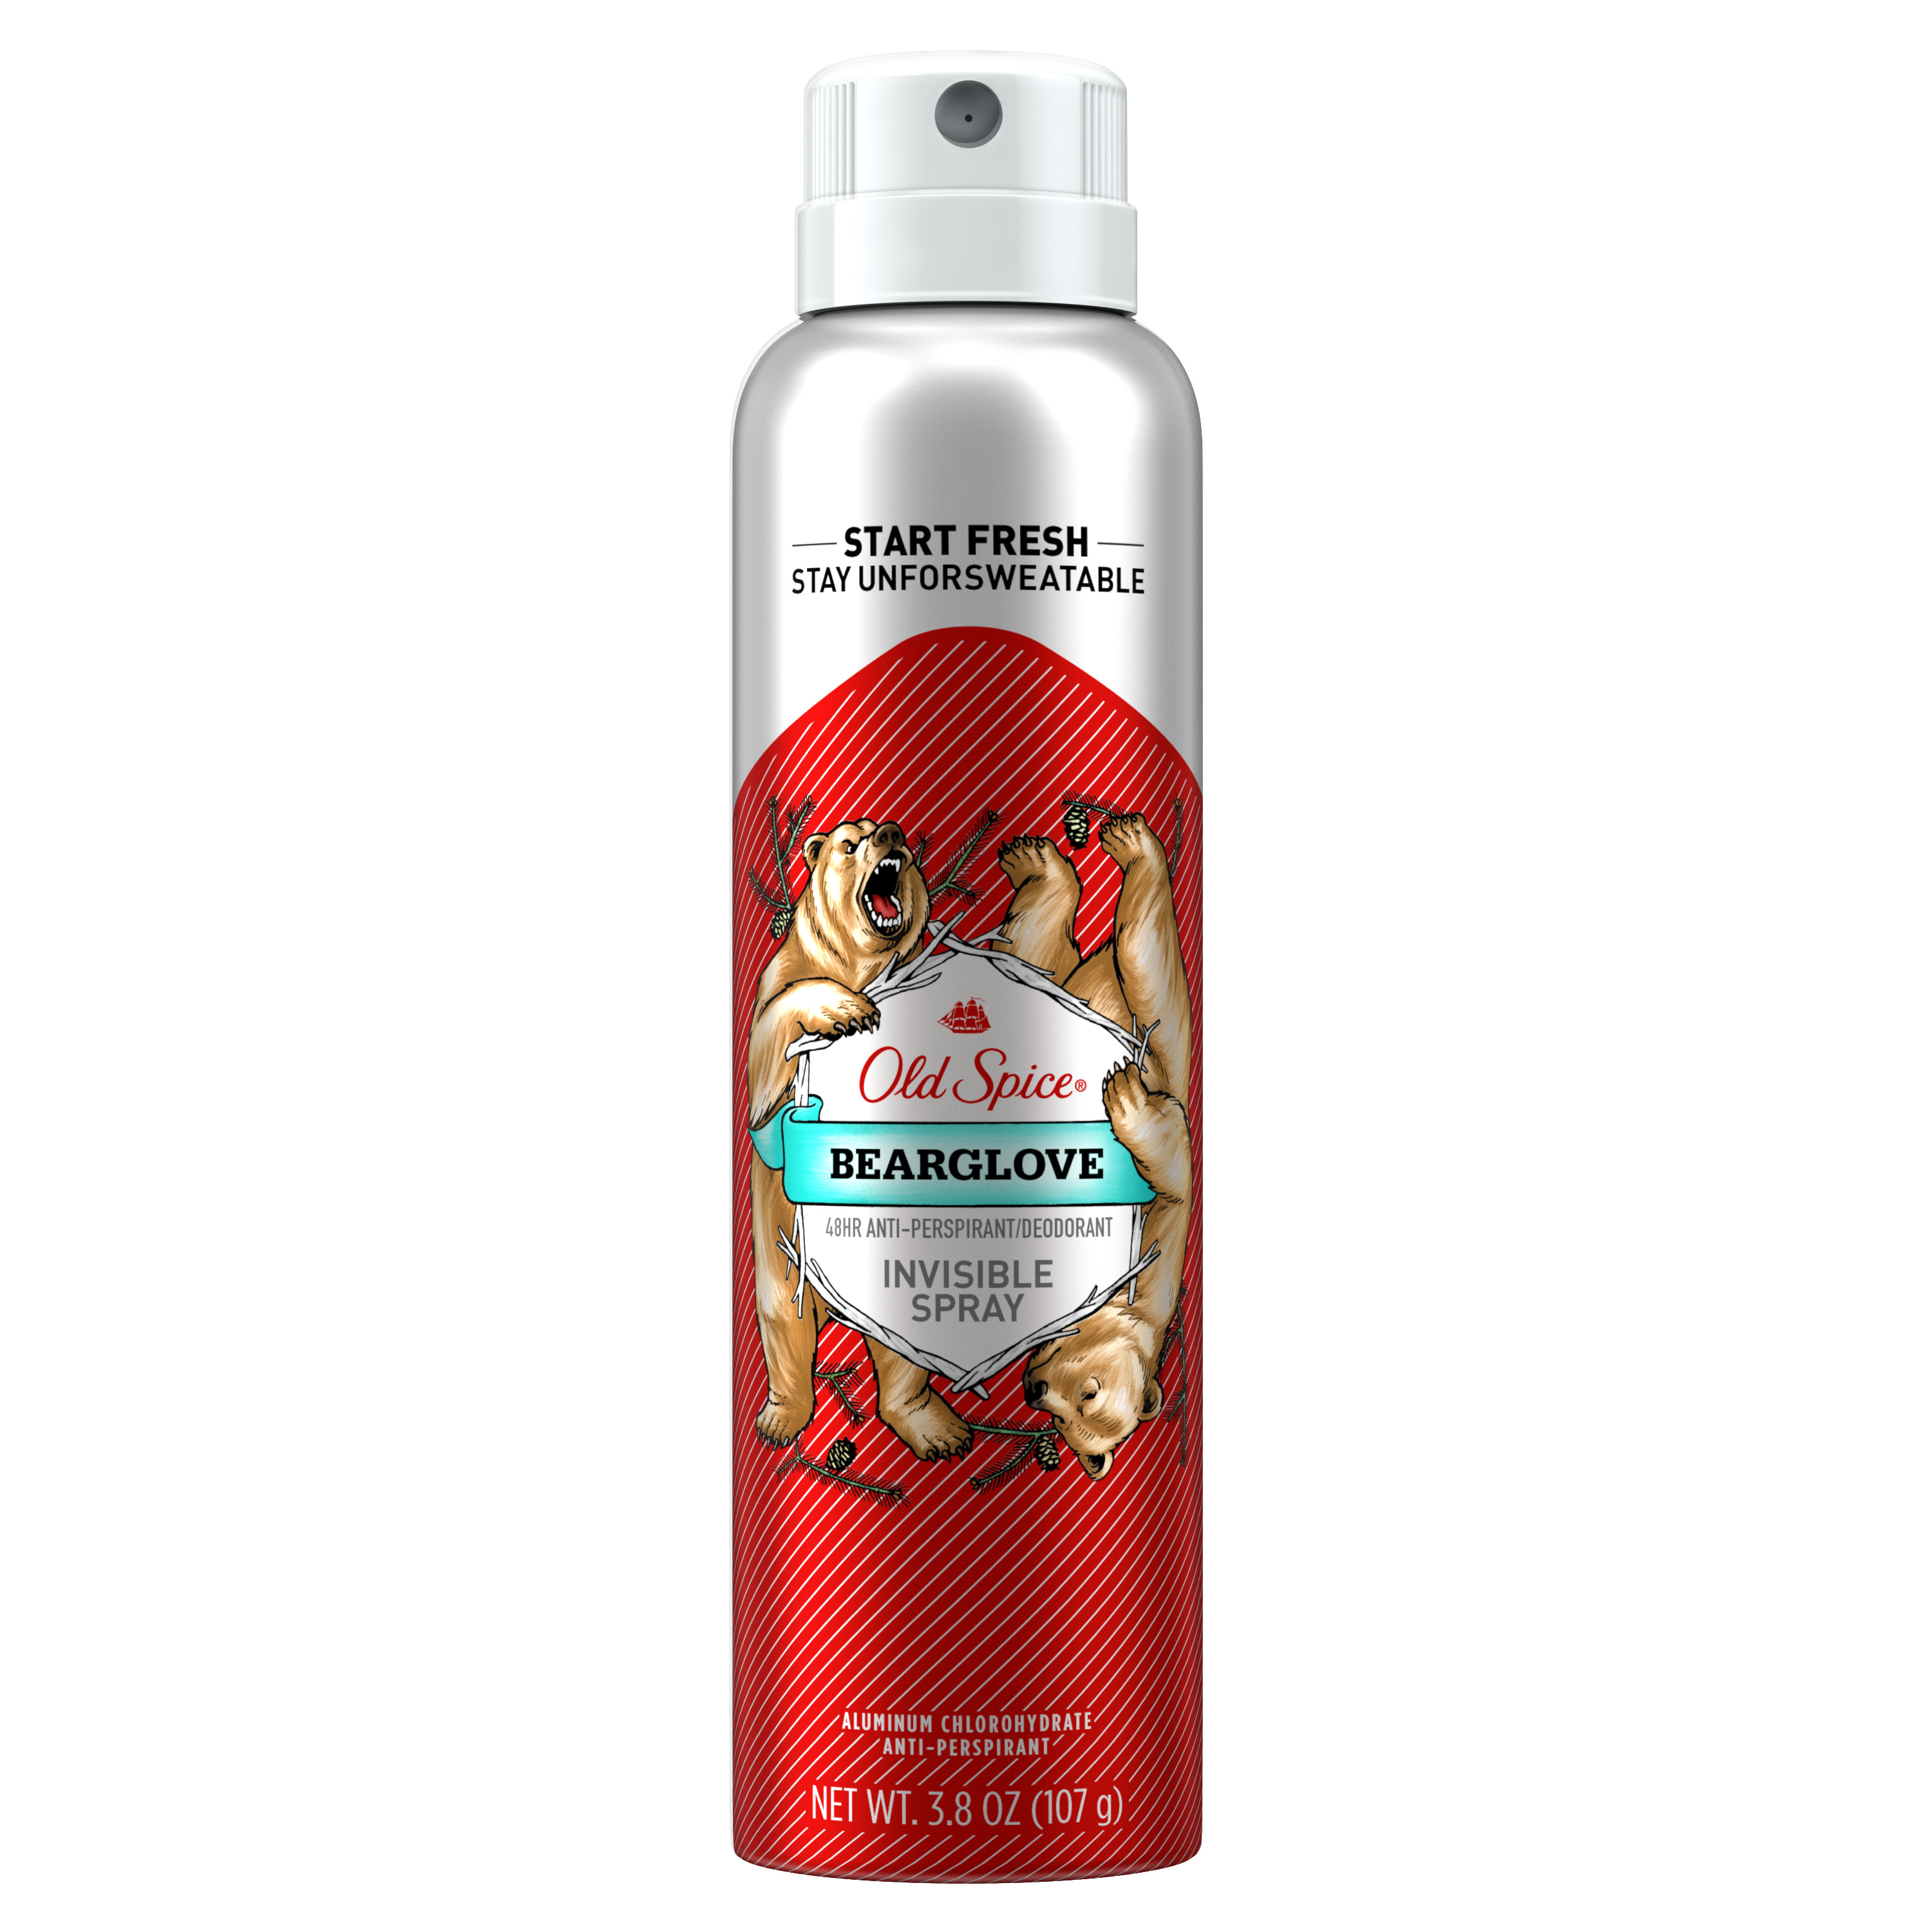 Old Spice Invisible Spray Antiperspirant and Deodorant for men, Bearglove, 3.8 oz